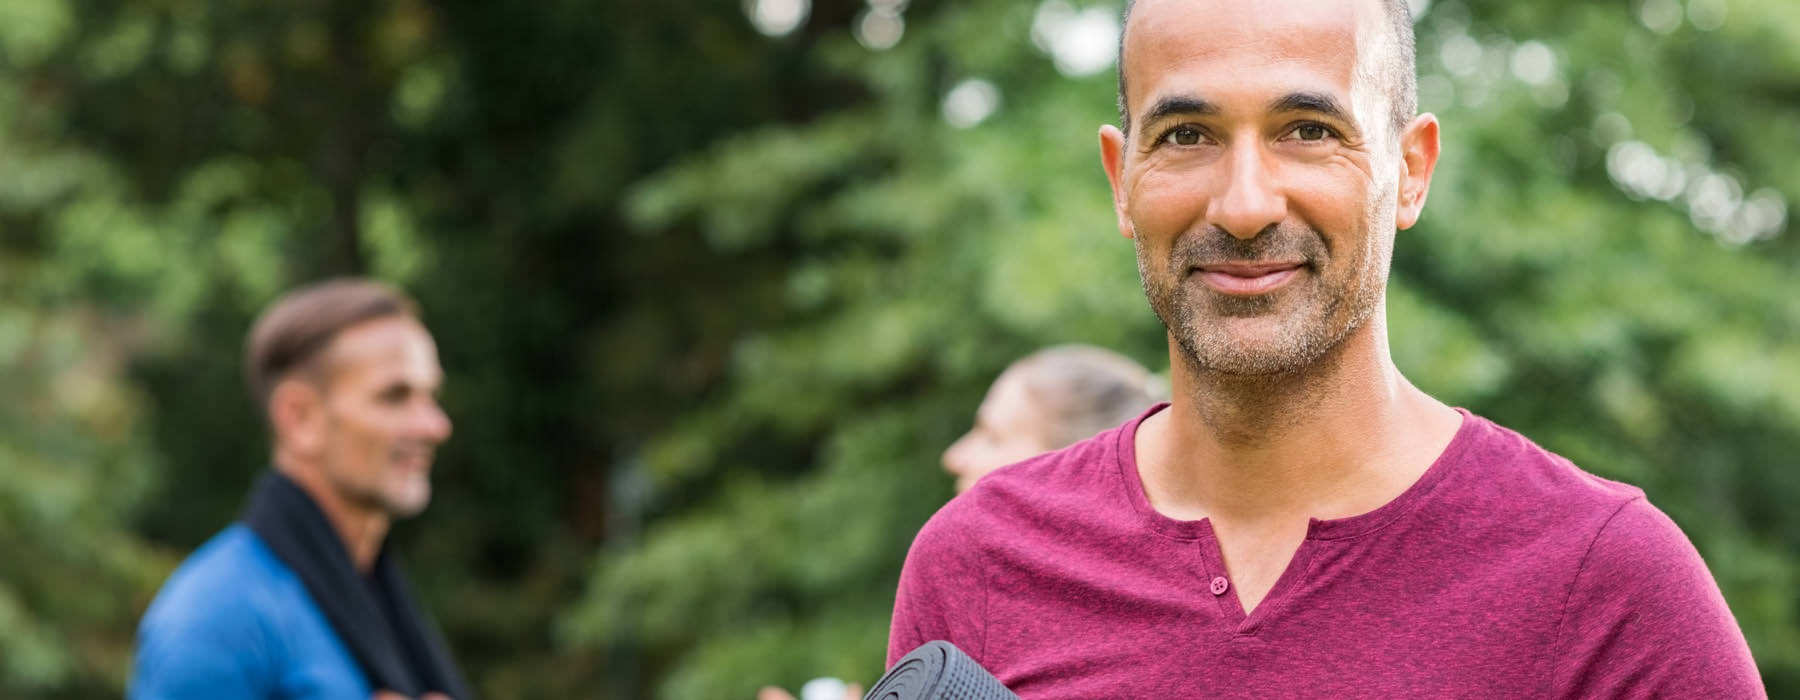 smiling man holds yoga mat in park with friends talking behind him